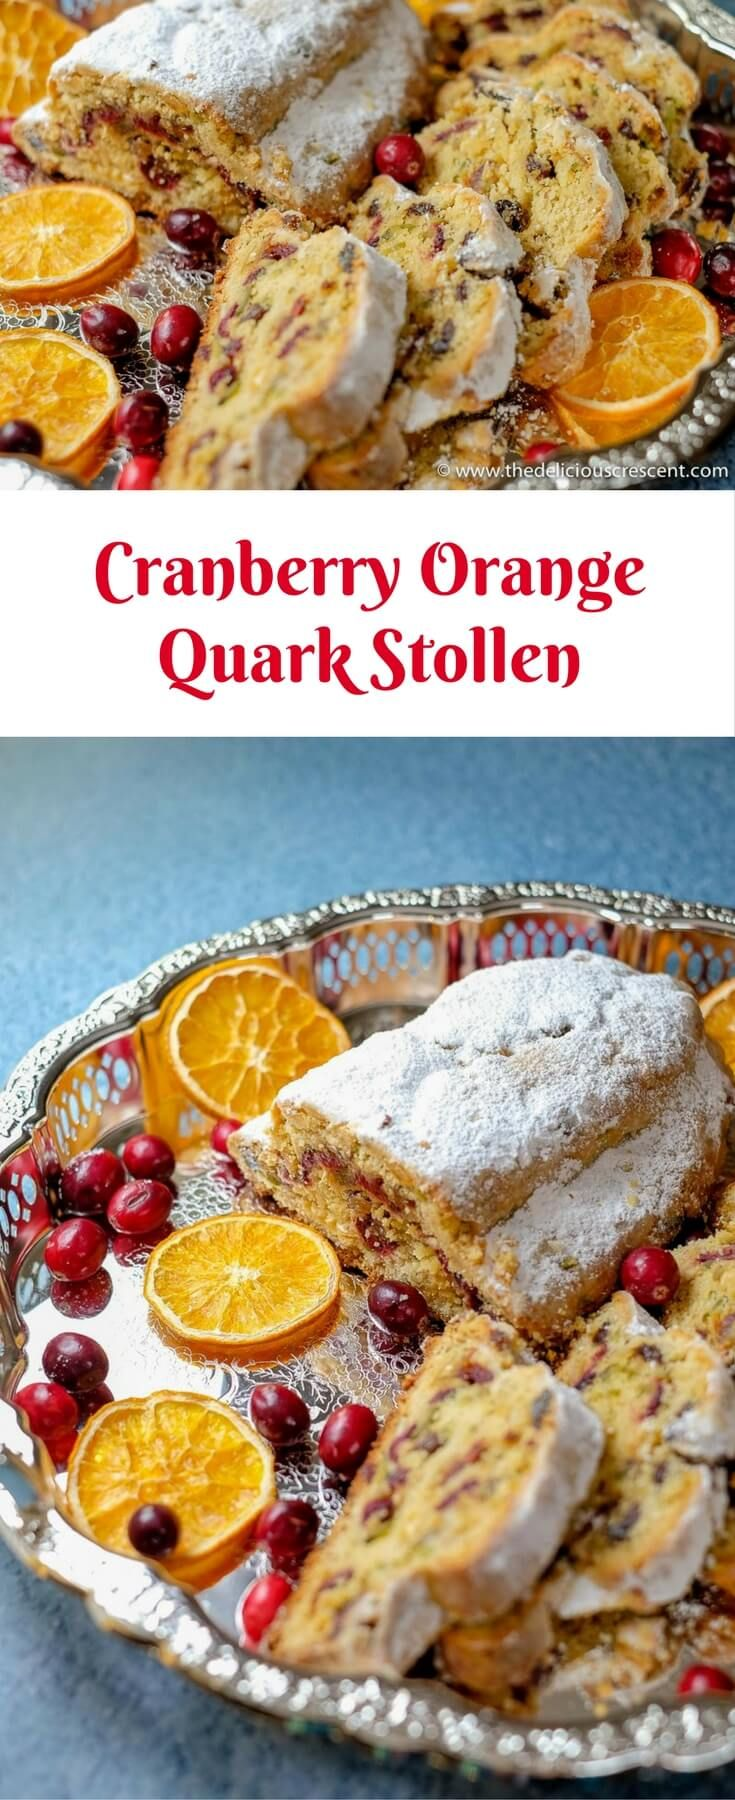 Cranberry Orange Quark Stollen, a much easier and quicker stollen recipe is scrumptious and moist. It is packed with dried fruits, nuts and infused with a variety of flavors. It tastes decadent but uses less refined sugar than comparably rich cake recipes.   #cranberry #stollen #baking #bread #Germanbaking #cake #fruitcake #driedorange   via @TDCrescent